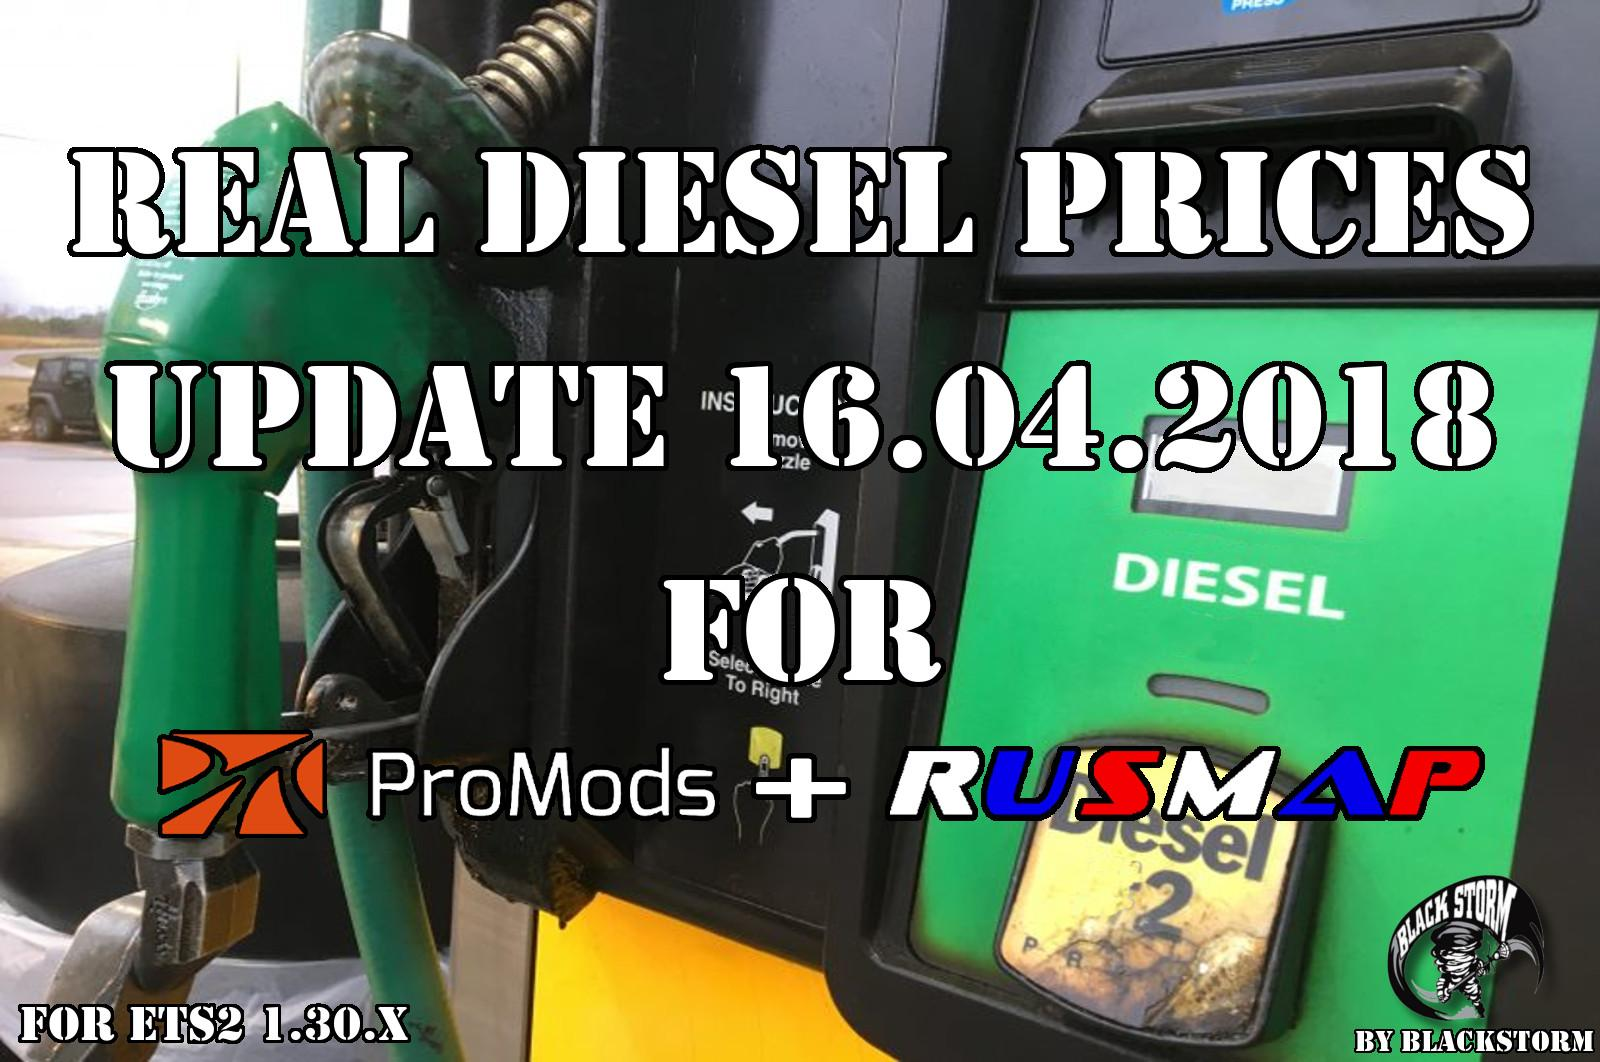 Real Diesel Prices for Promods Map 2.26 & RusMap 1.8 (updated 16/04/2018)